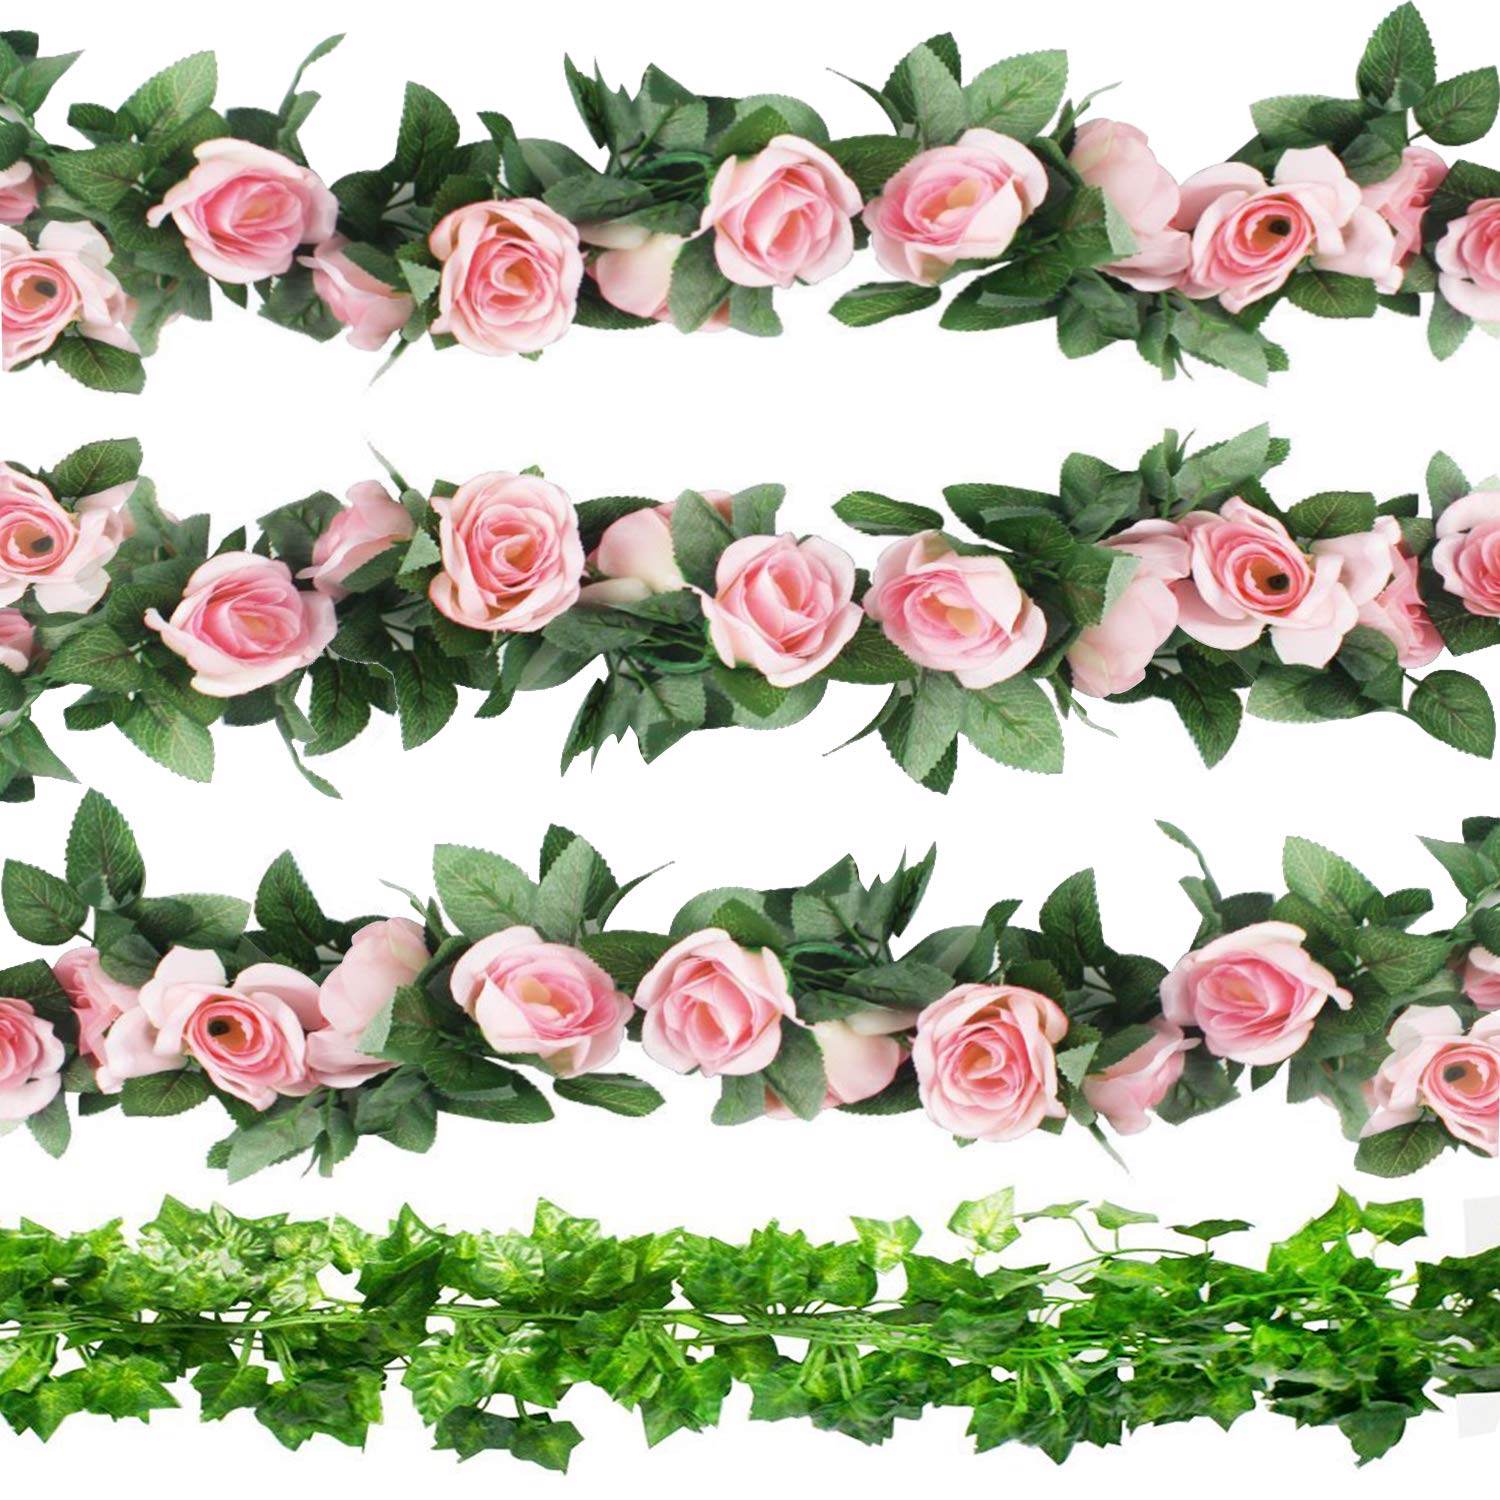 CEWOR 3pcs Artificial Rose Vines and 6pcs Artificial Ivy Artificial Flowers for Wedding Home Garden Party Decoration(Pink Rose) by CEWOR